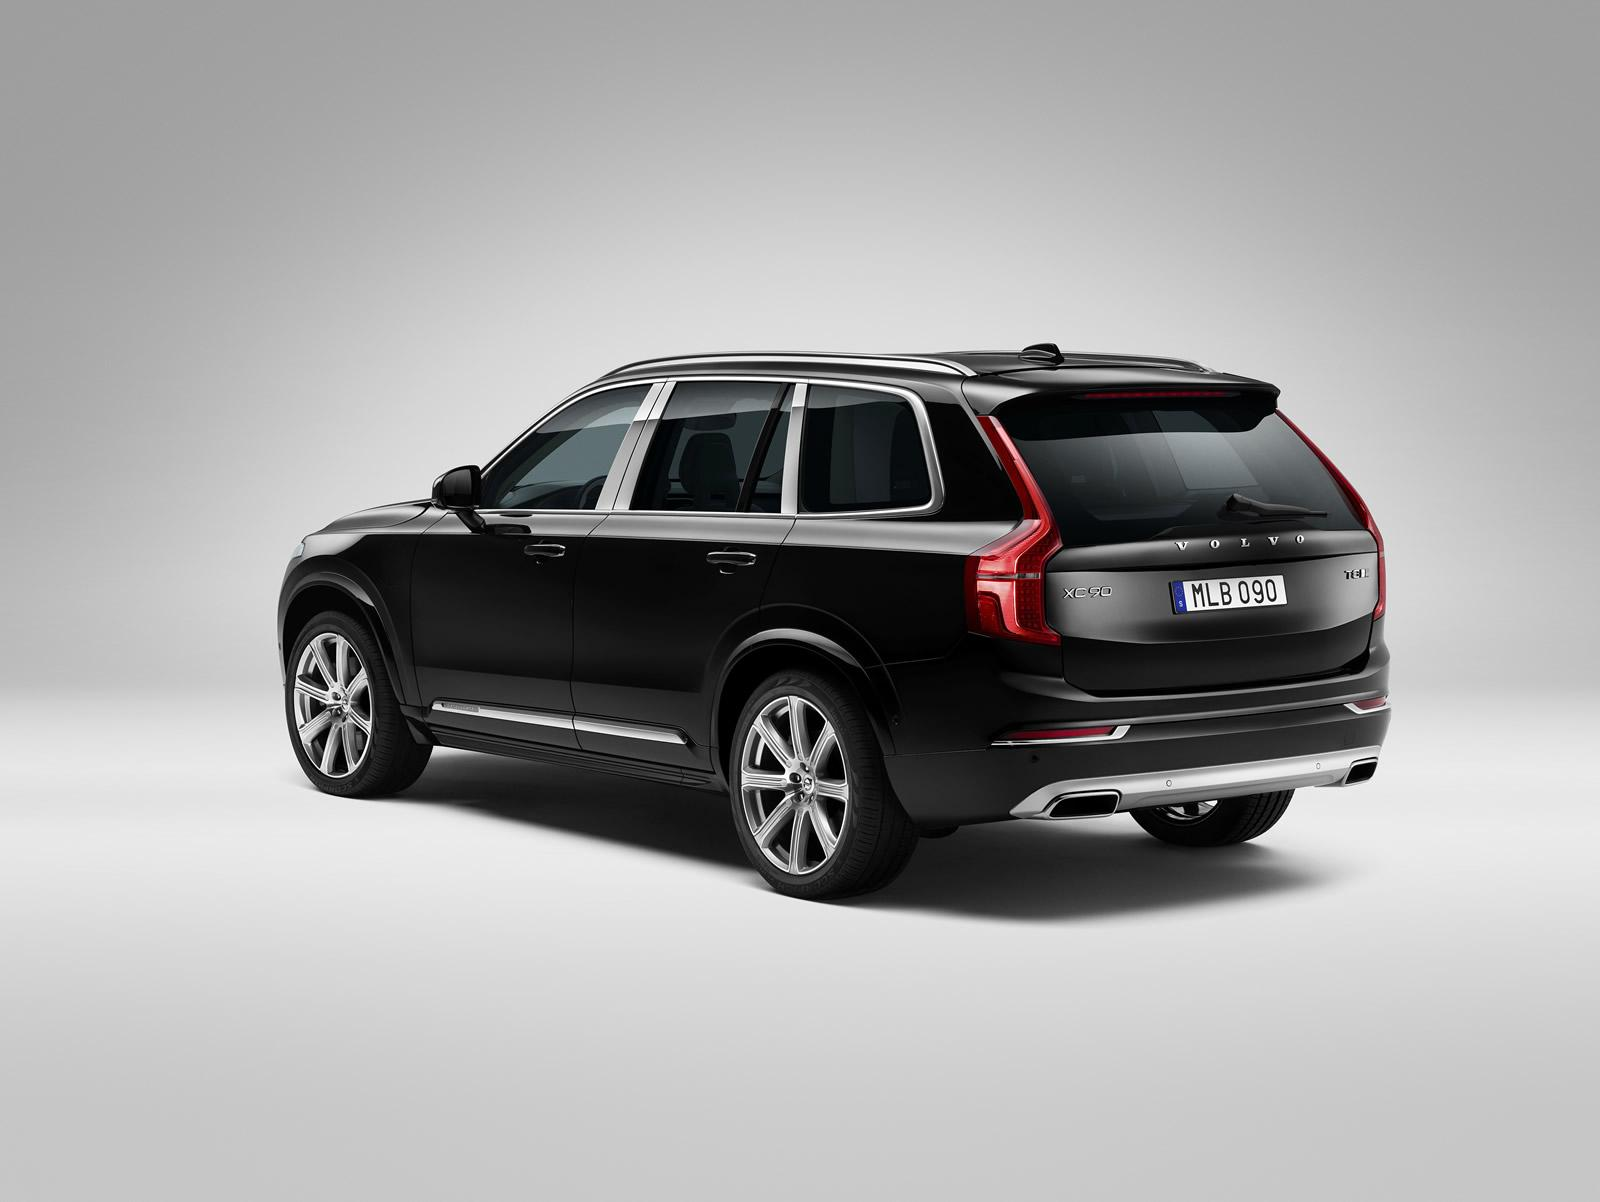 Volvo XC90 Excellence rear press shots